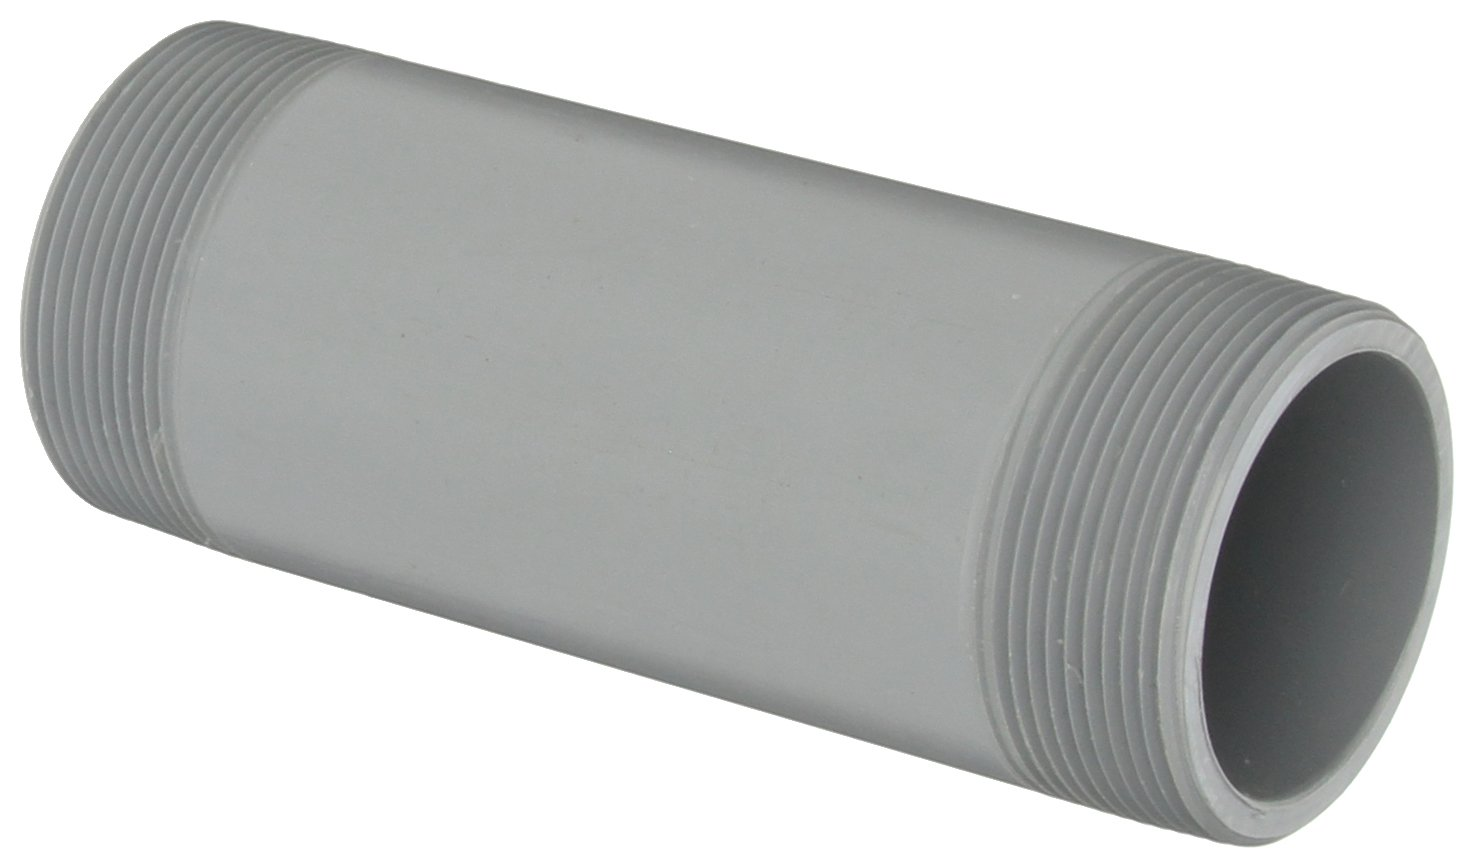 Gray GF Piping Systems PVC Pipe Fitting Coupling Schedule 80 1-1//4 NPT Female